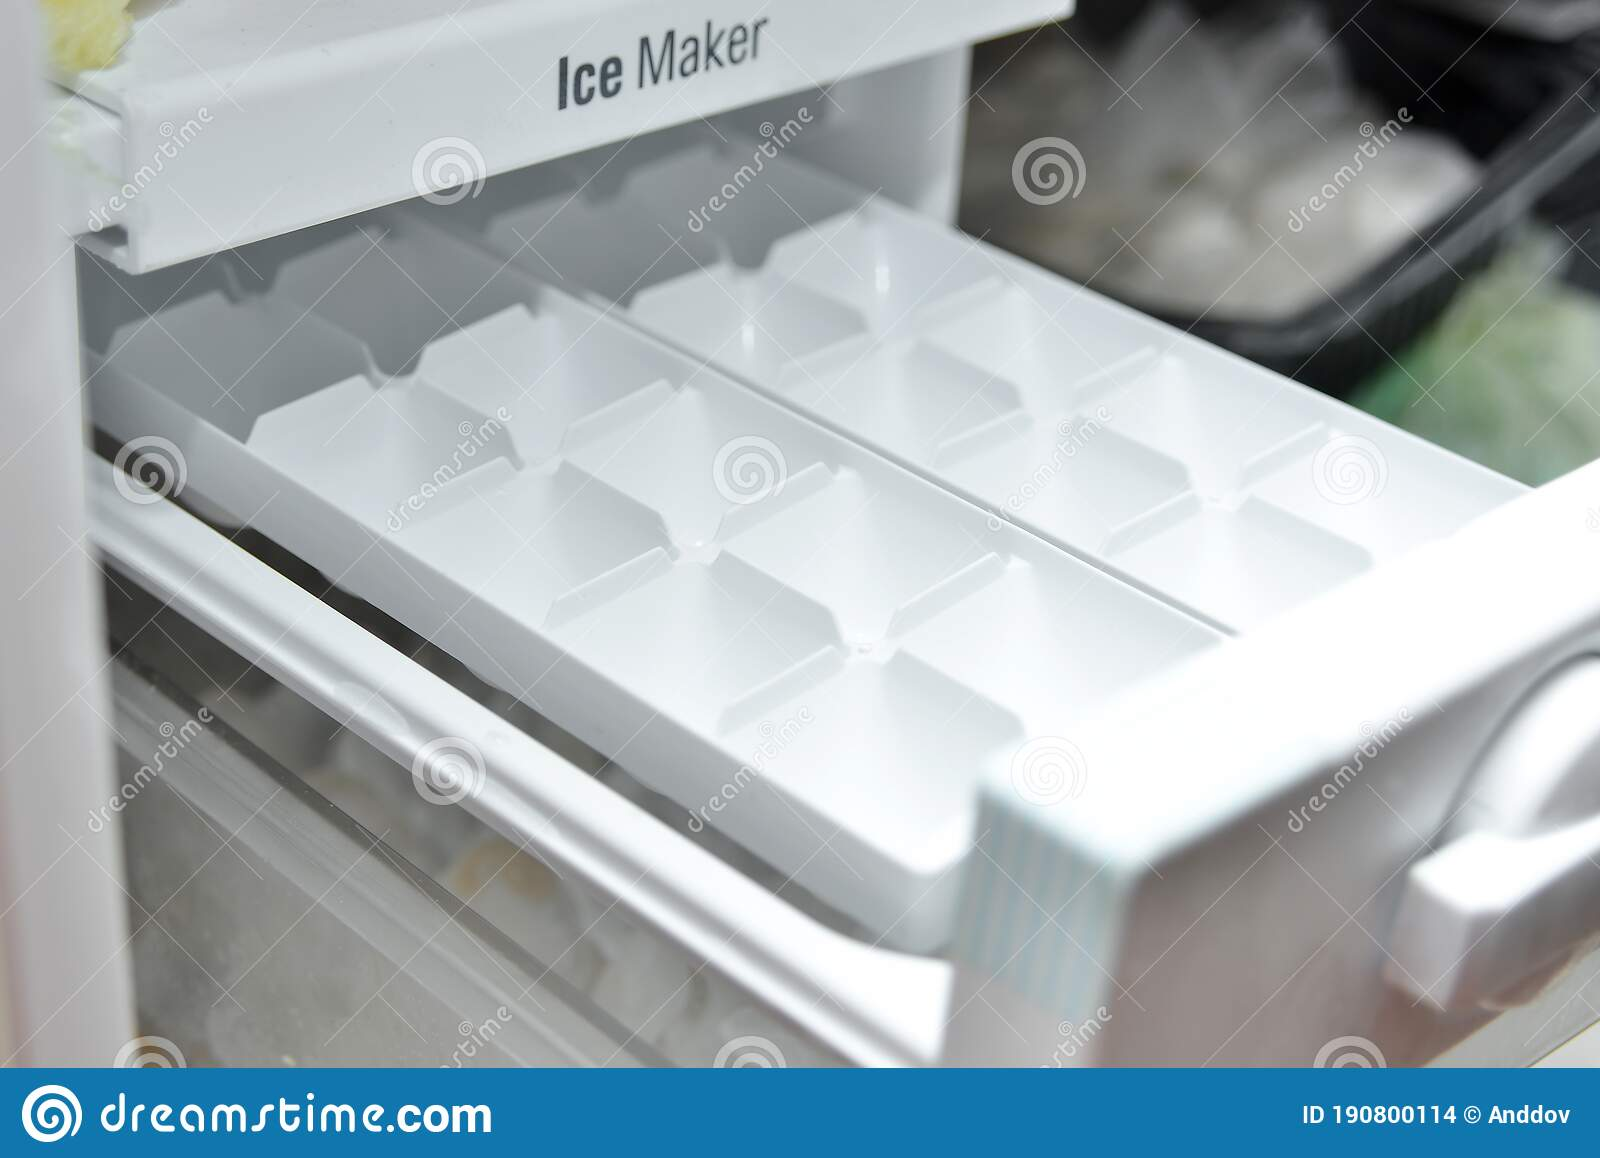 Freezer Tray For Freezing Ice Cubes In The Freezer Ice Maker For Refrigerators Household Stock Photo Image Of Clean Food 190800114